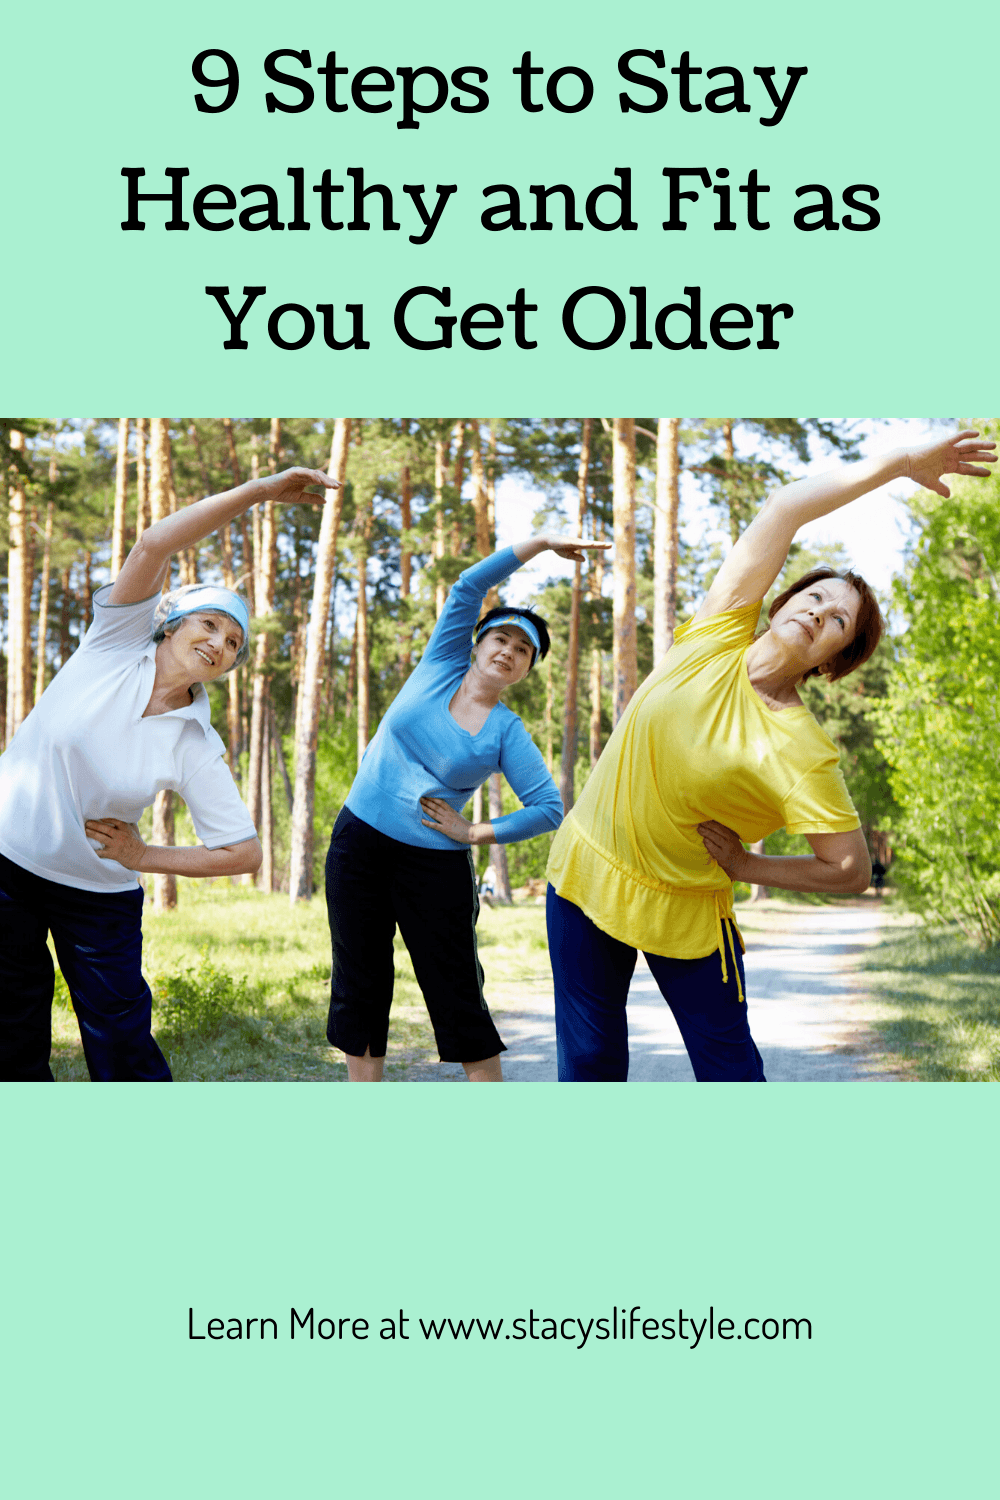 9 Steps to Stay Healthy and Fit as You Get Older